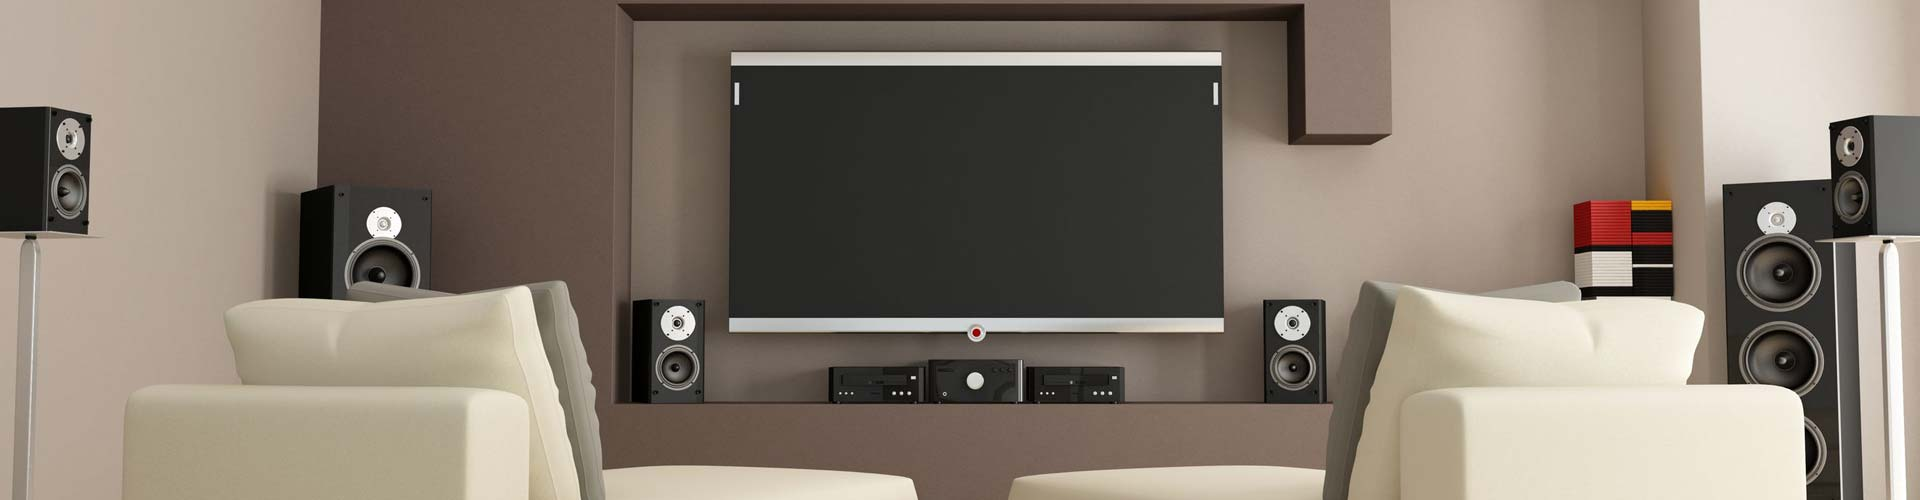 Multi-room Audio & Video